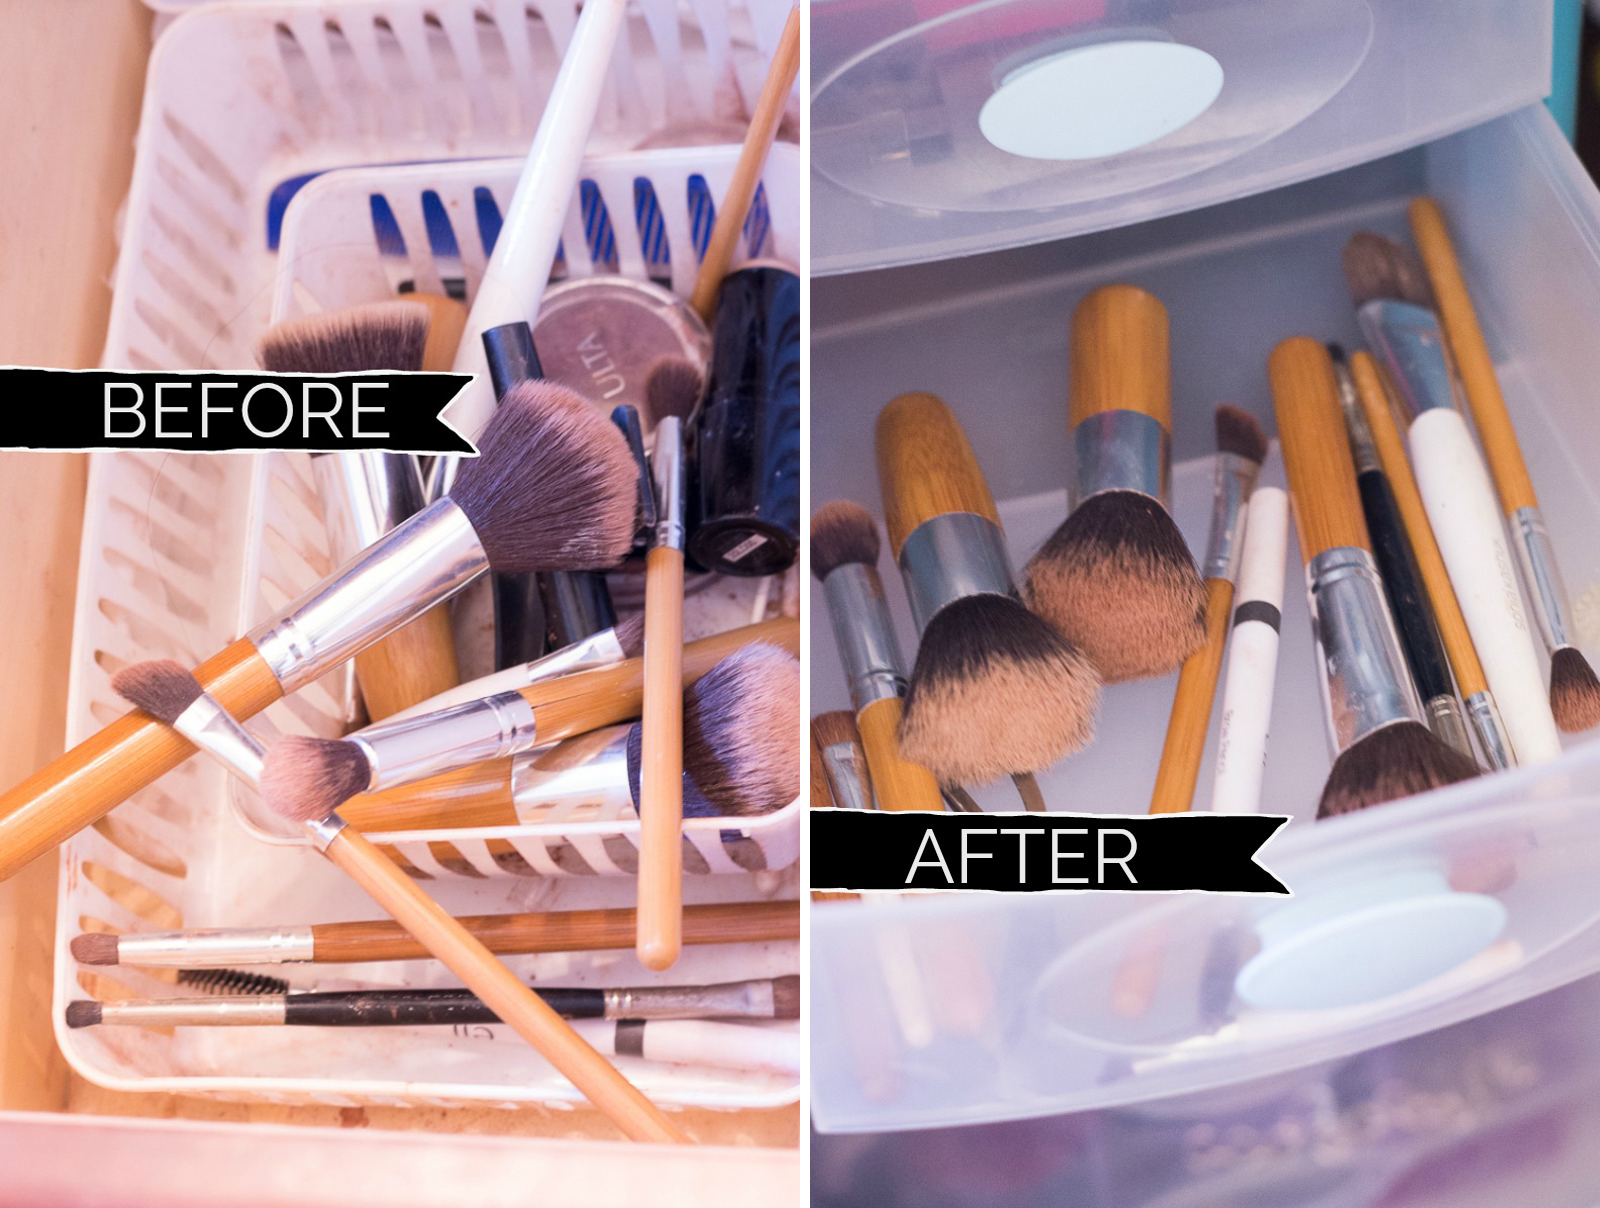 Bathroom Organization Ideas: Organize makeup brushes in small plastic drawers